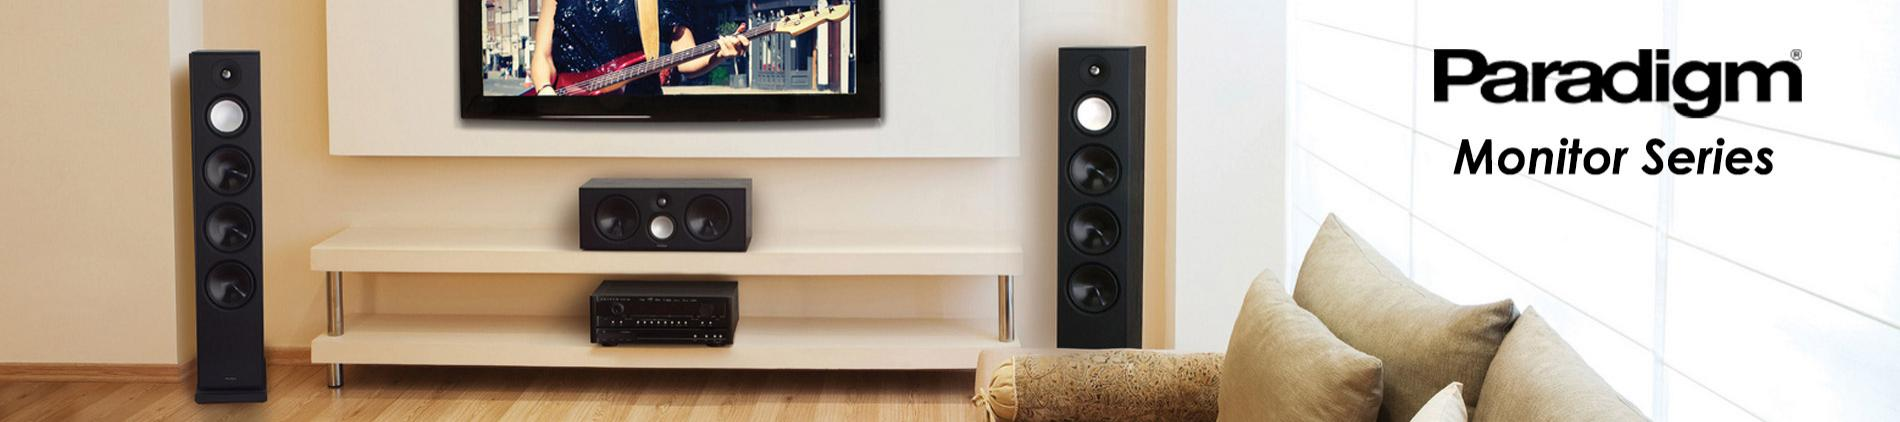 Home speaker ,home audio,tower speakers, paradigm